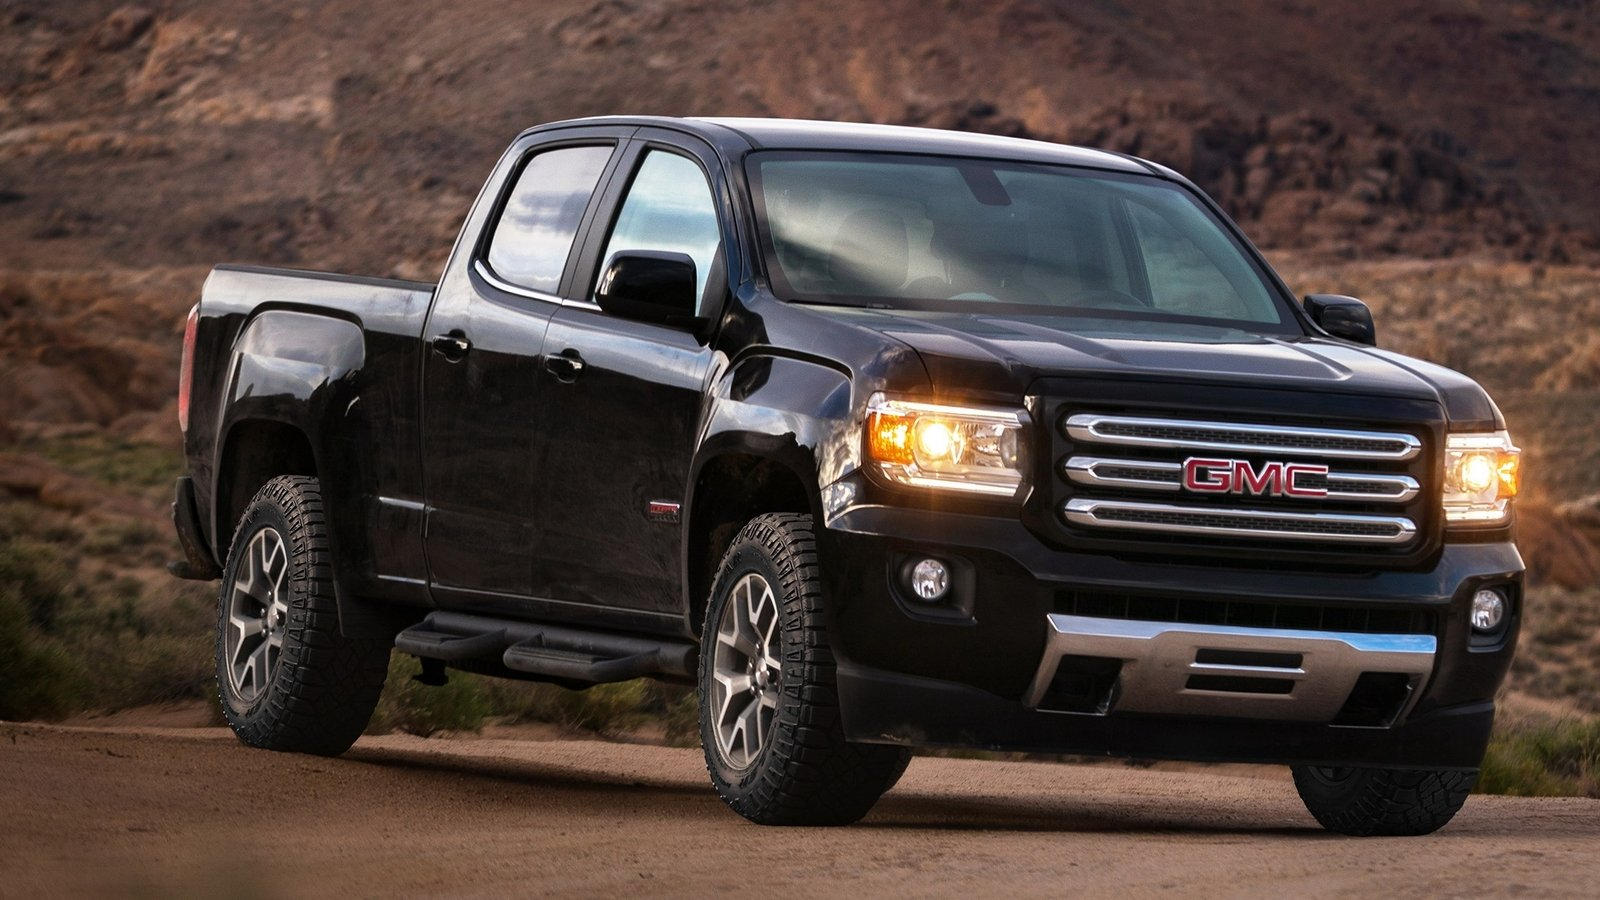 2017 gmc canyon all terrain x picture 686663 truck review top speed. Black Bedroom Furniture Sets. Home Design Ideas